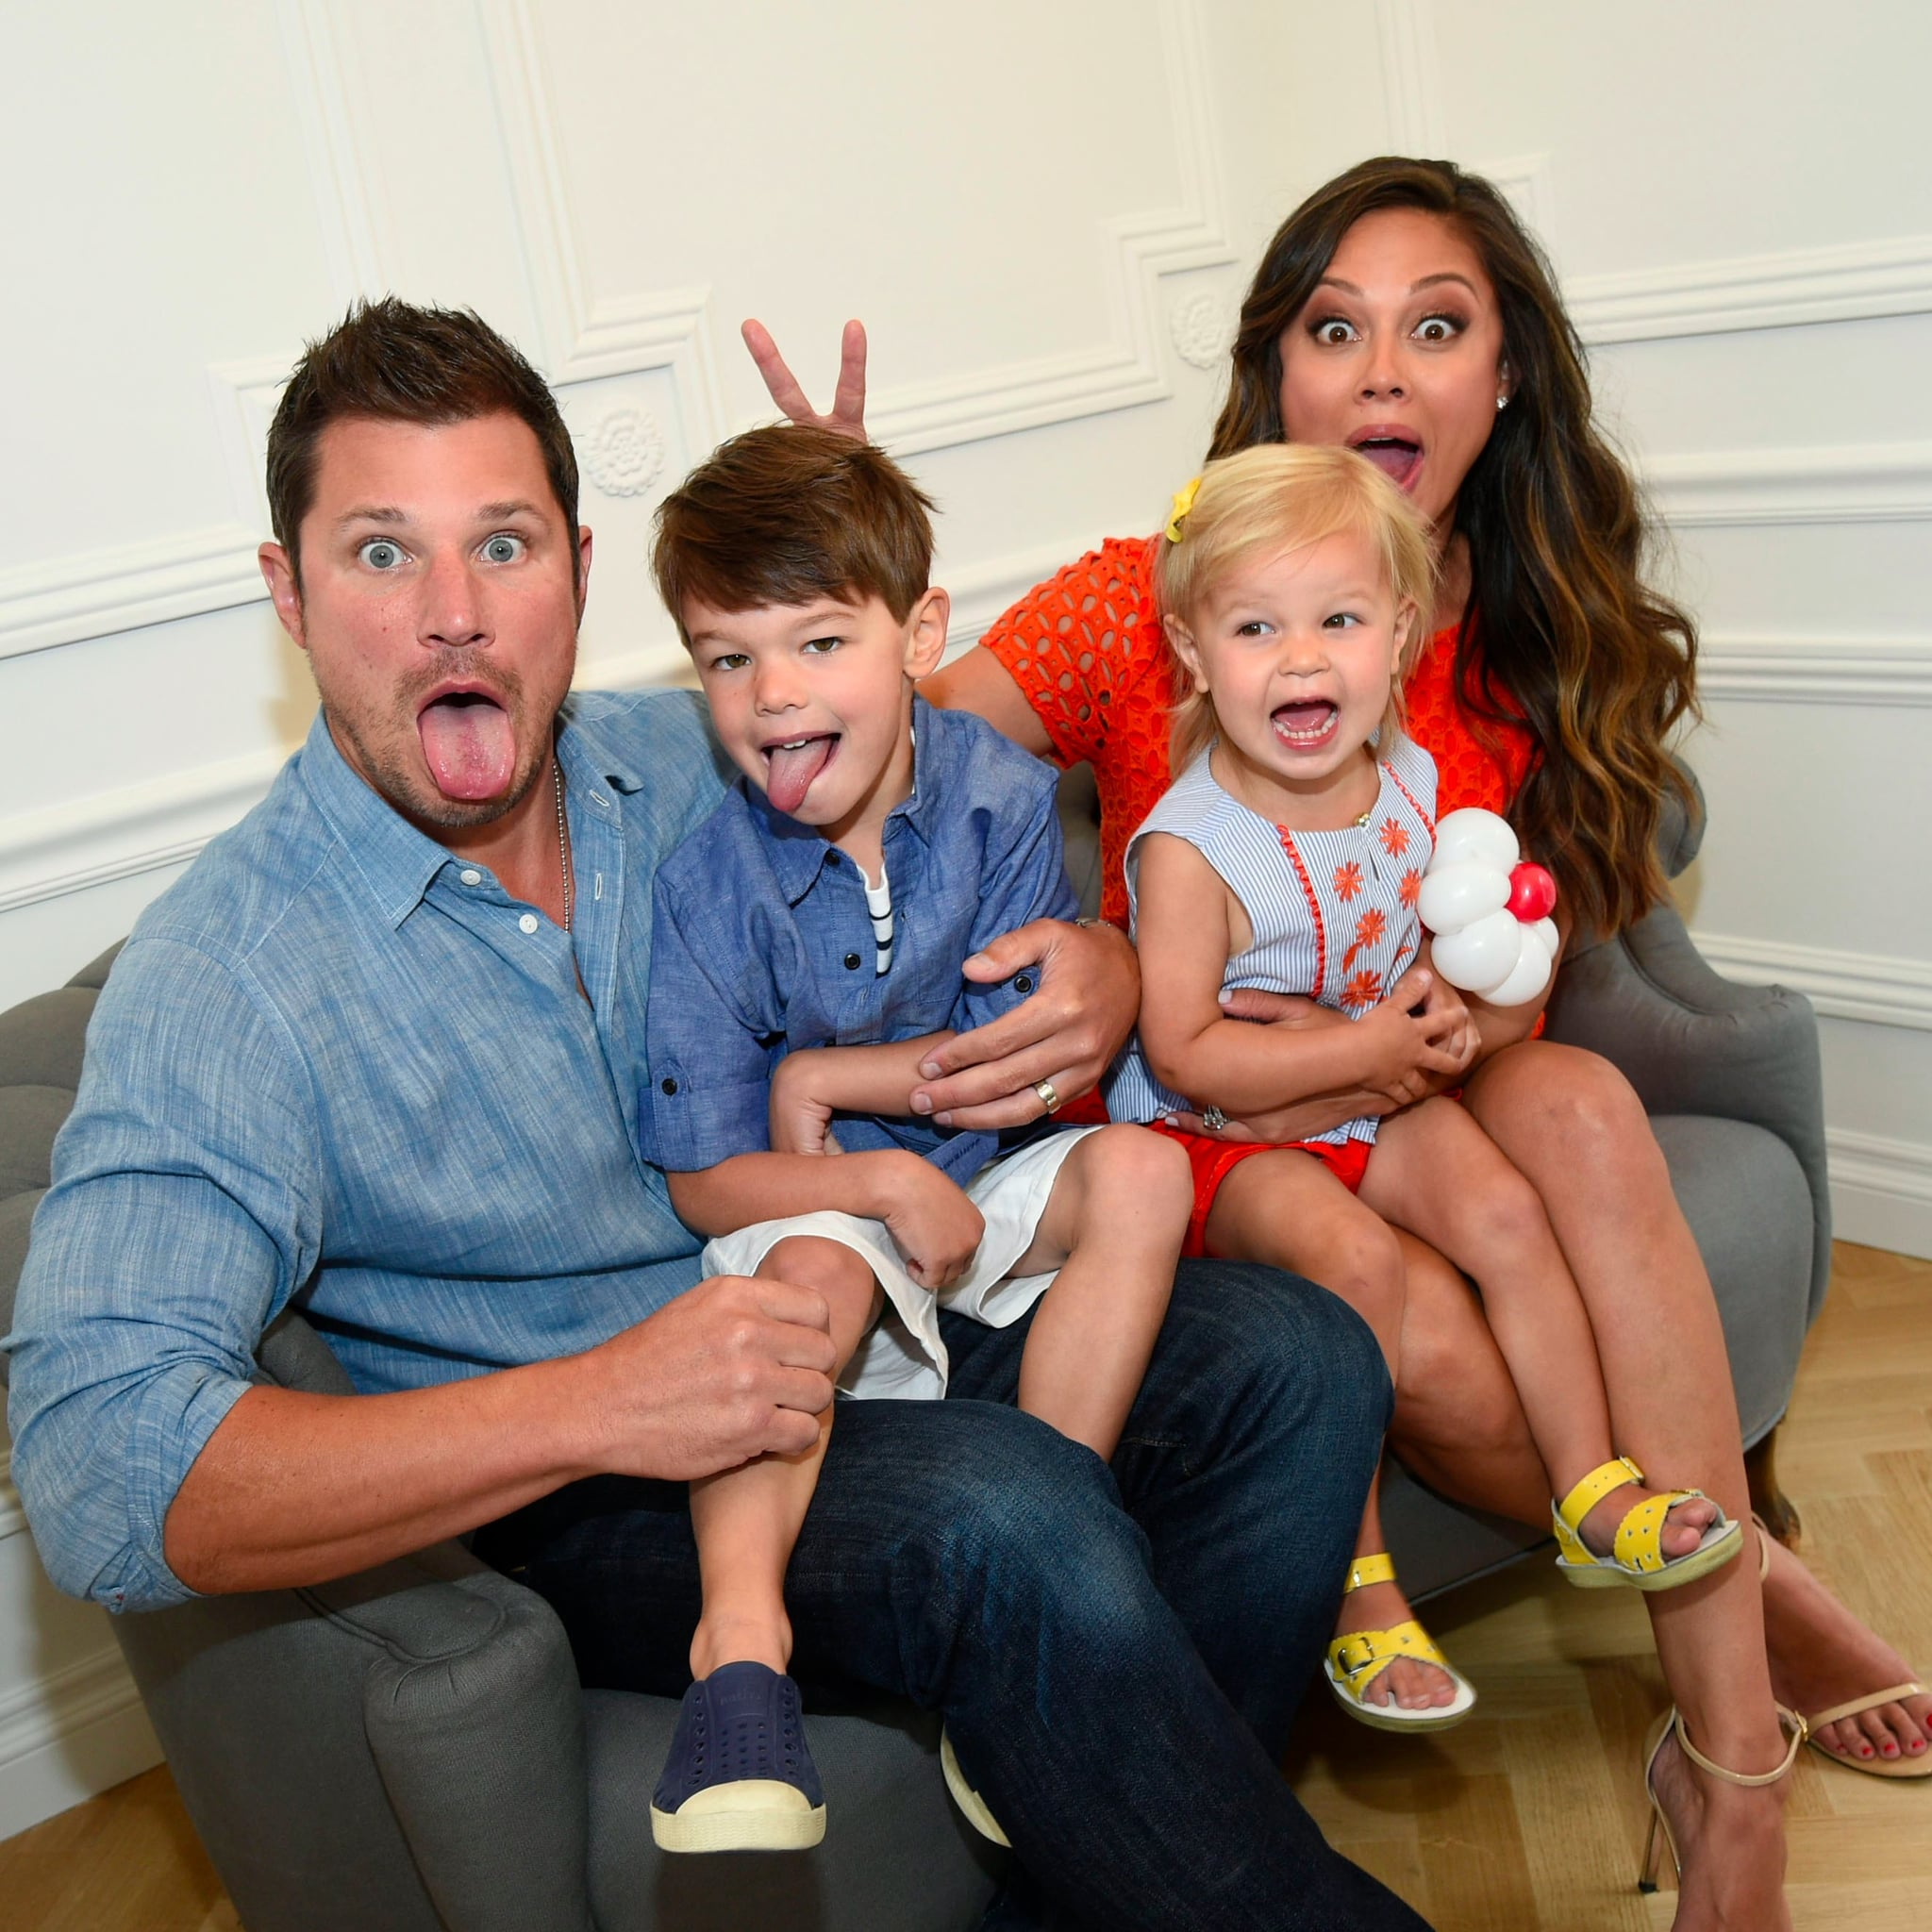 Nick Lachey and Vanessa Minnillo with her son and daughter